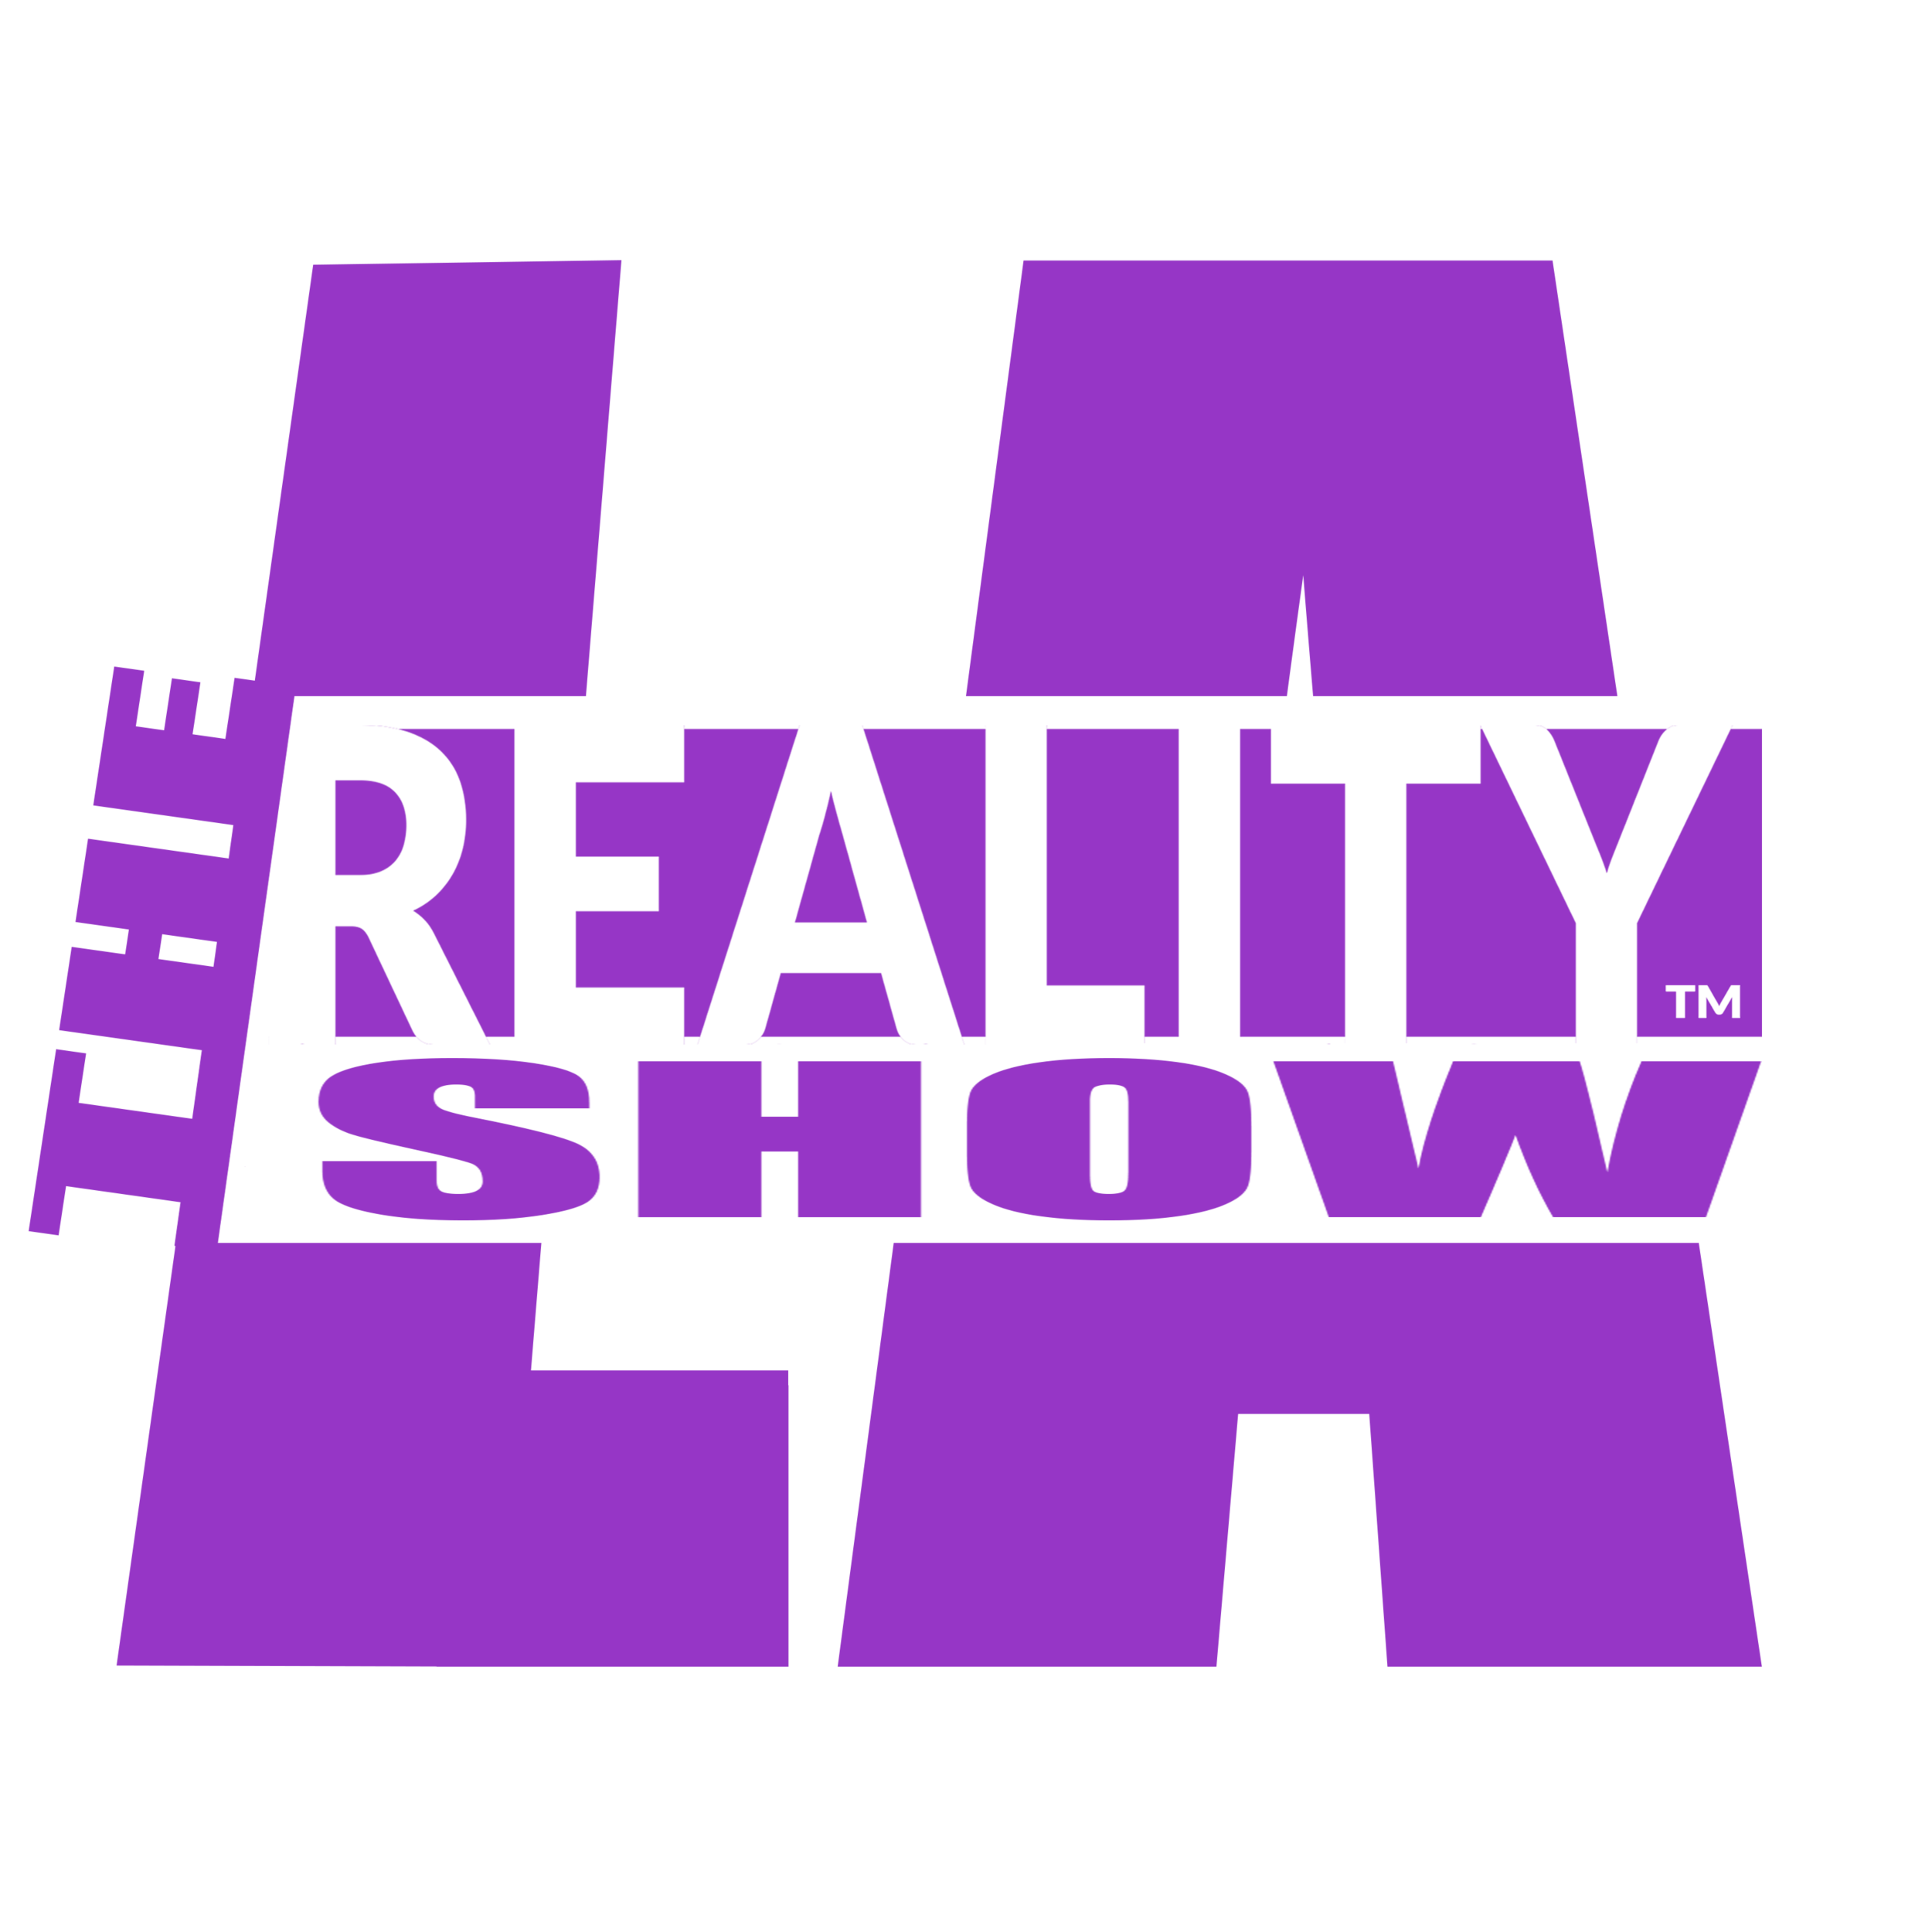 The-Reality-Show-Logo-5.4---PURPLE.png